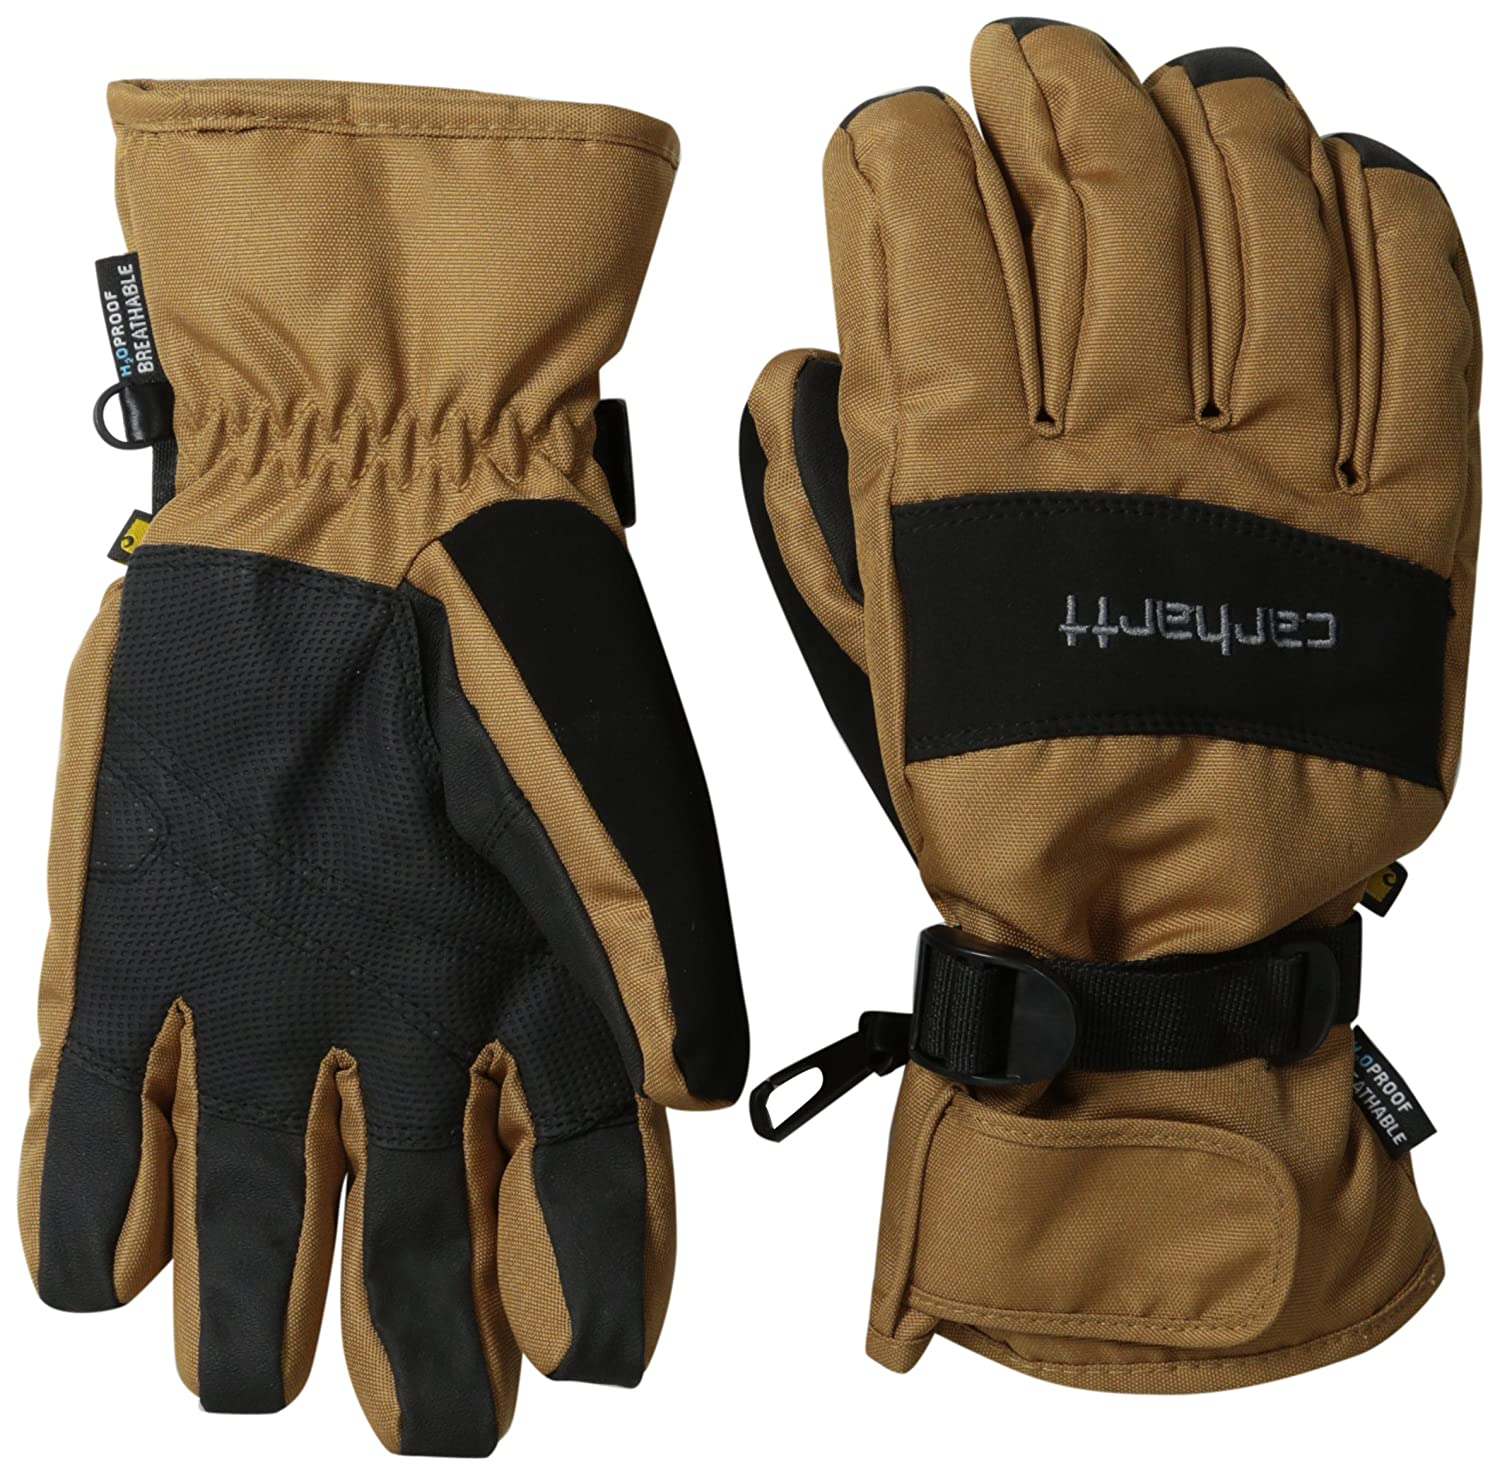 Carhartt Mens W.B. Waterproof Windproof Insulated Work Glove Carhartt Mens Gloves